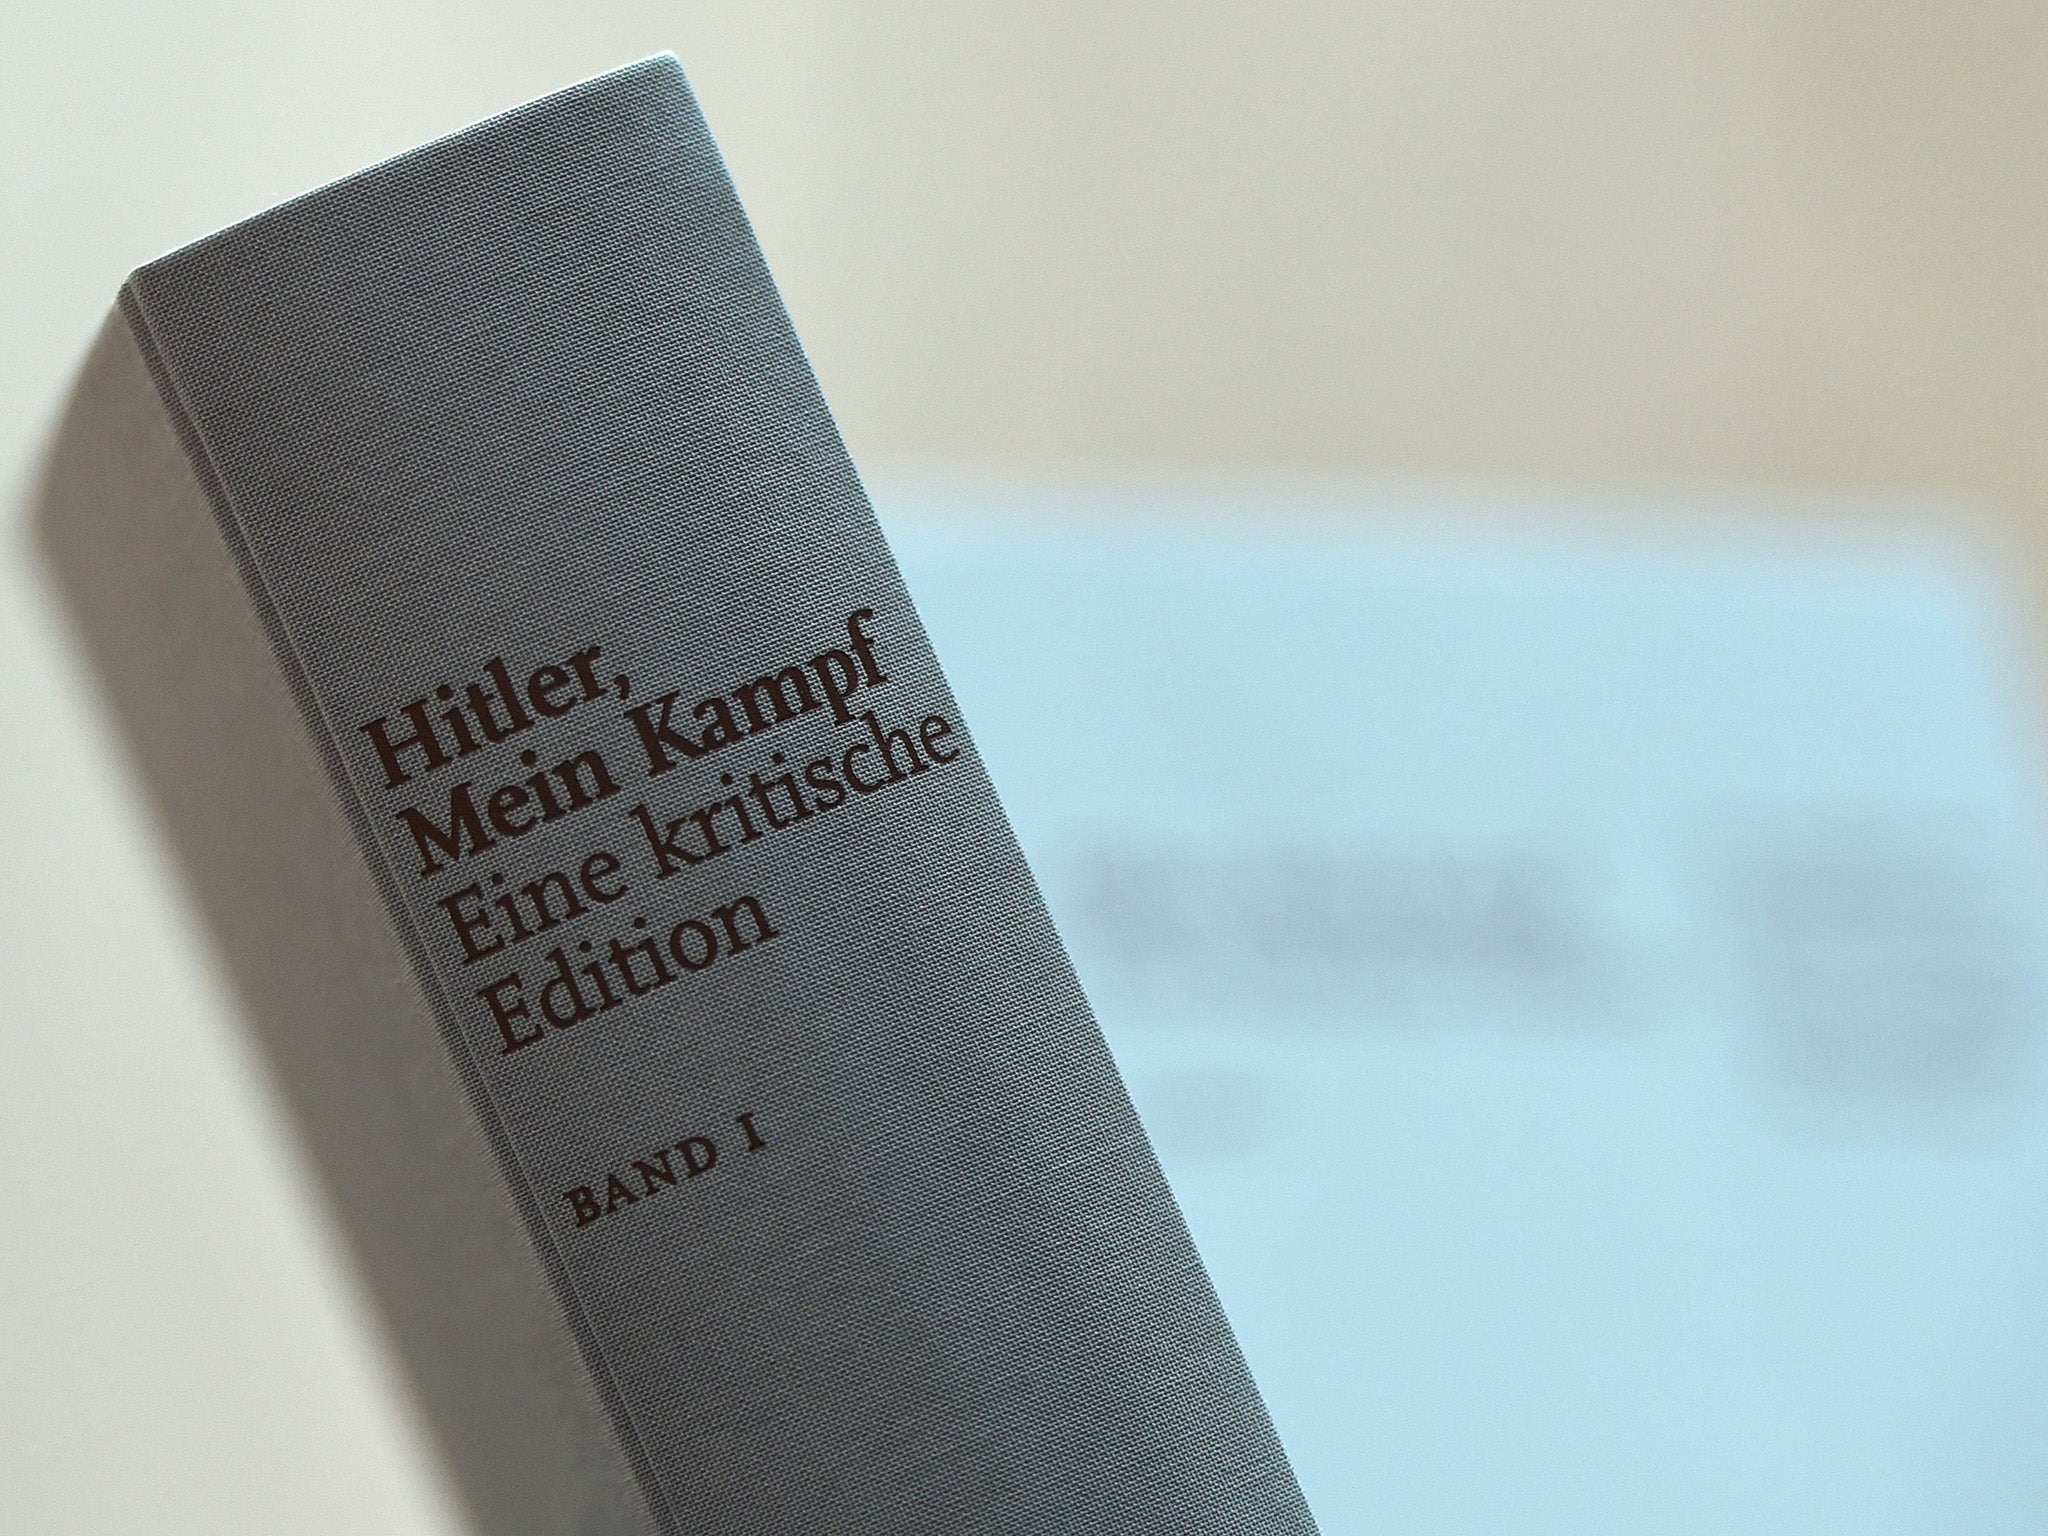 After 70 years of ban, Germany prints Mine Kampf. She must